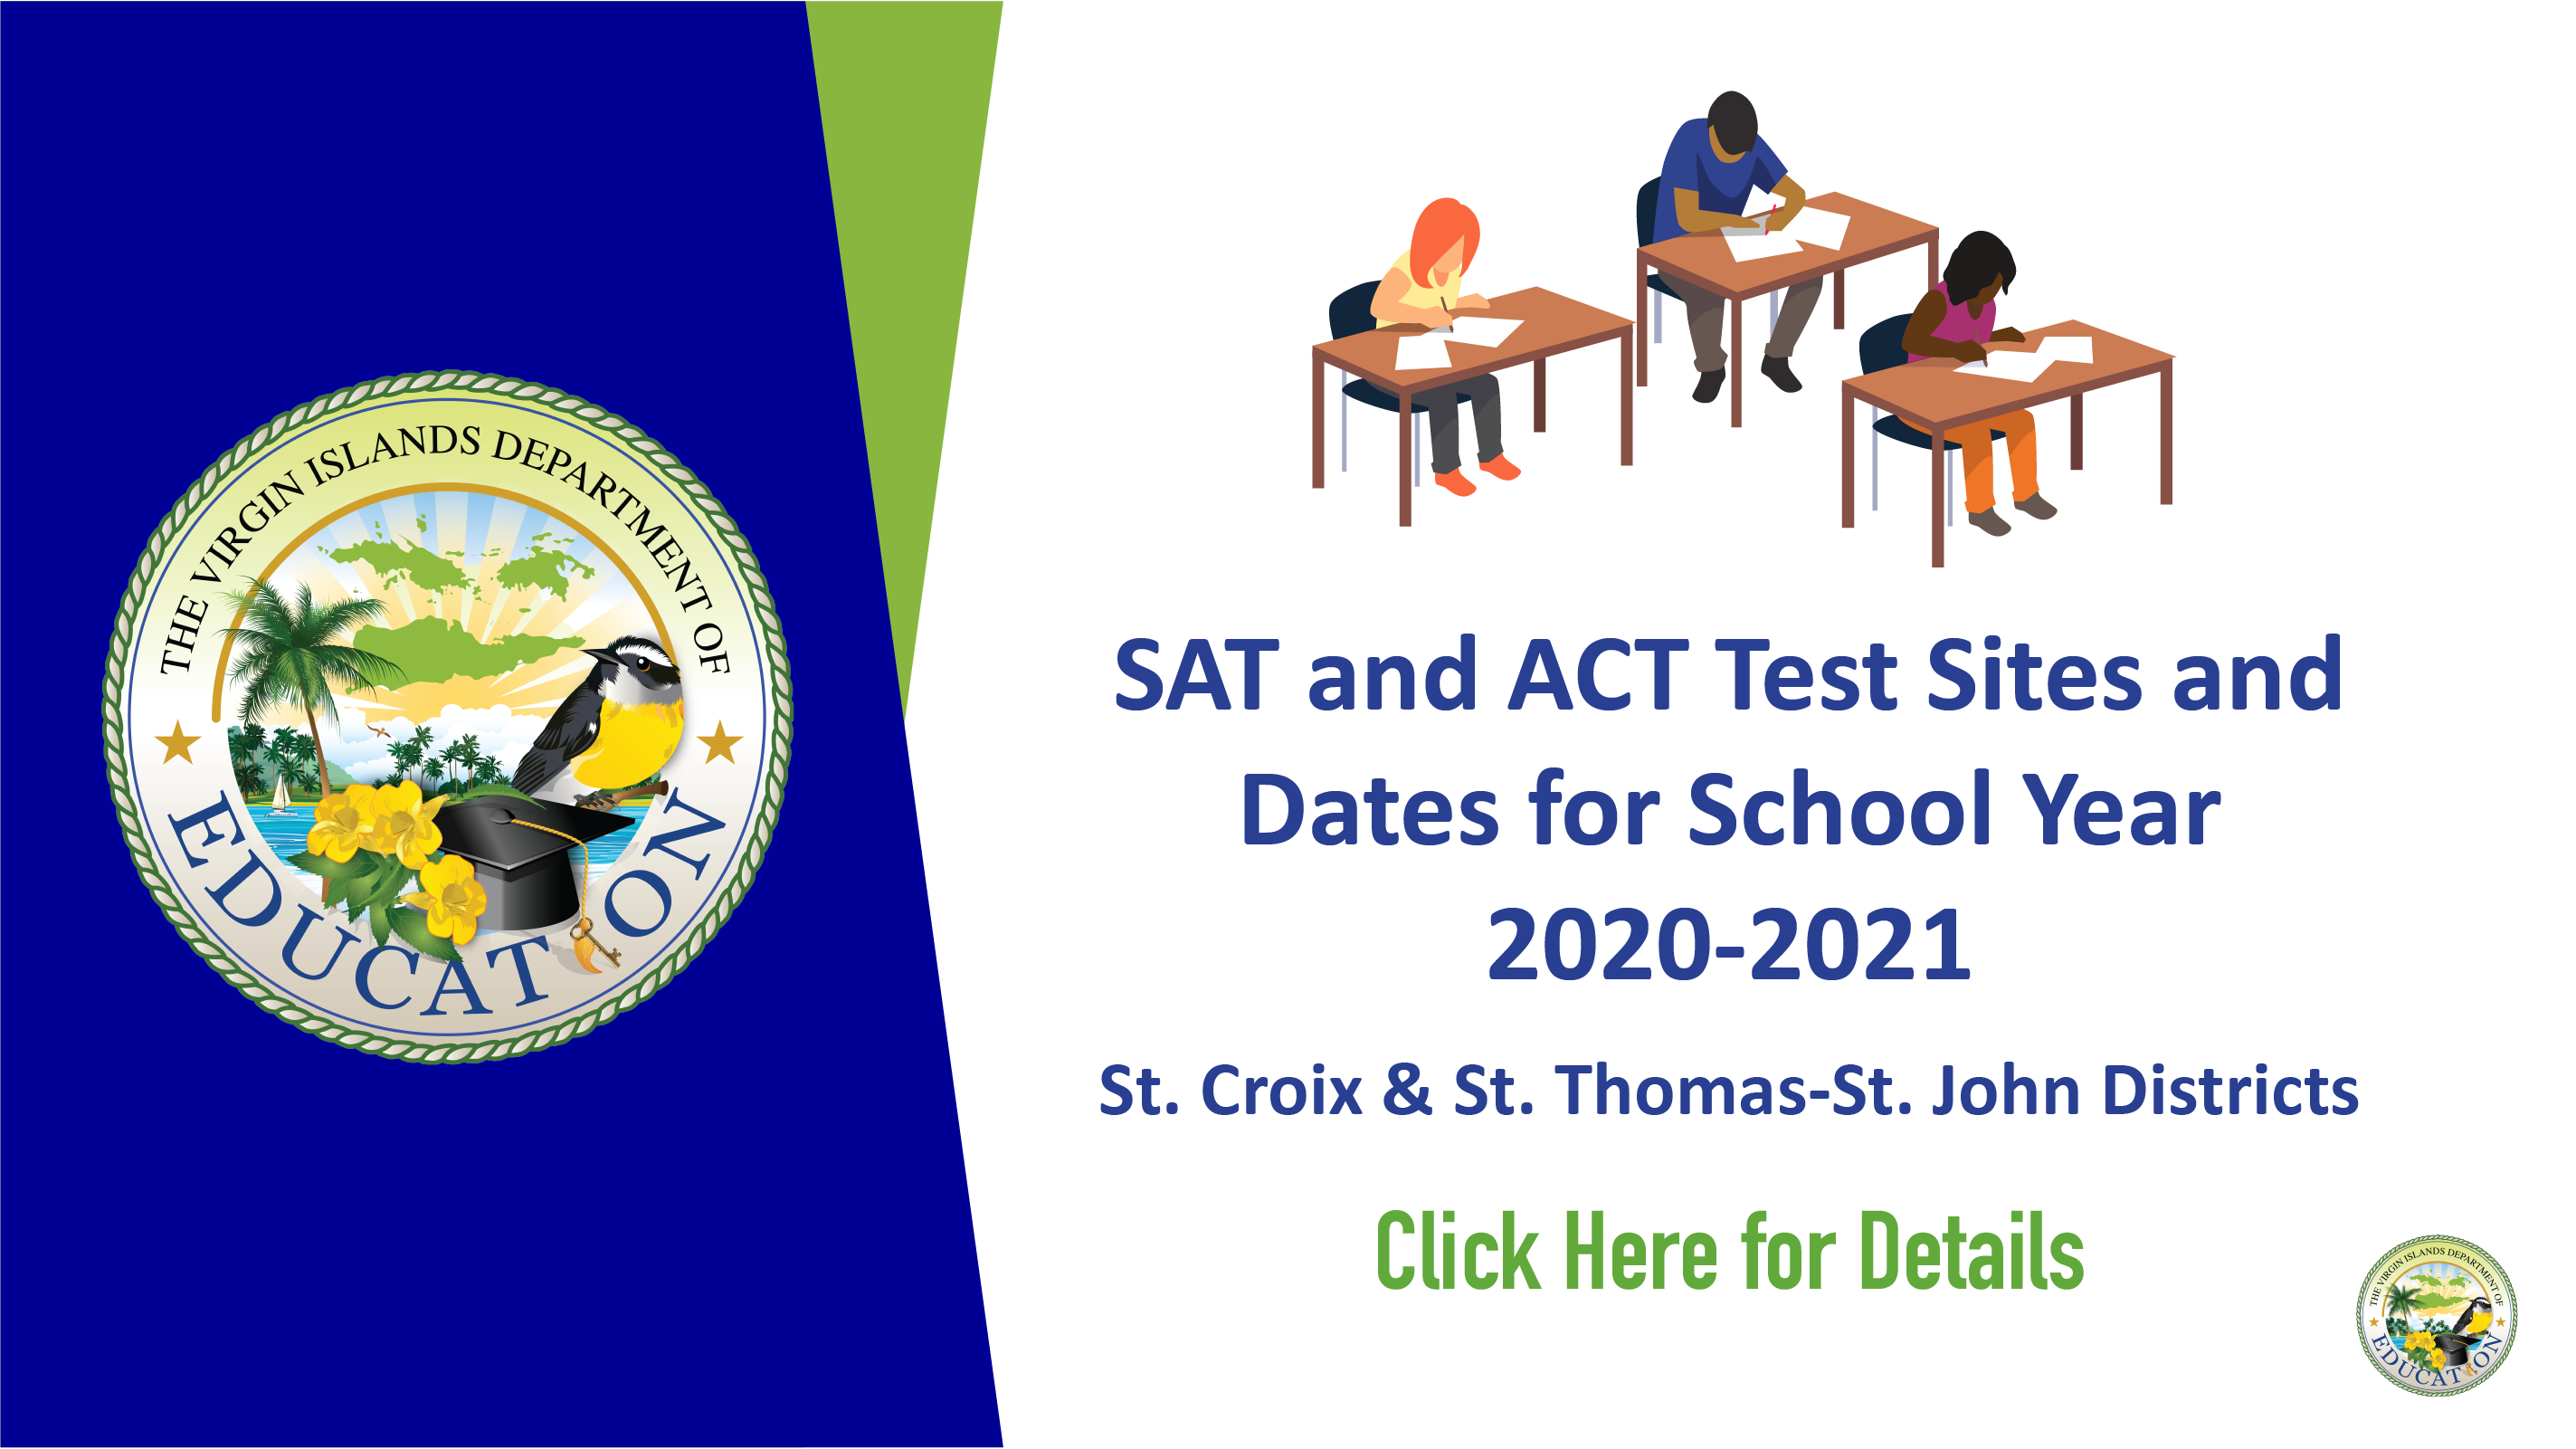 SAT and ACT Test Sites and Dates for School Year 2020-2021